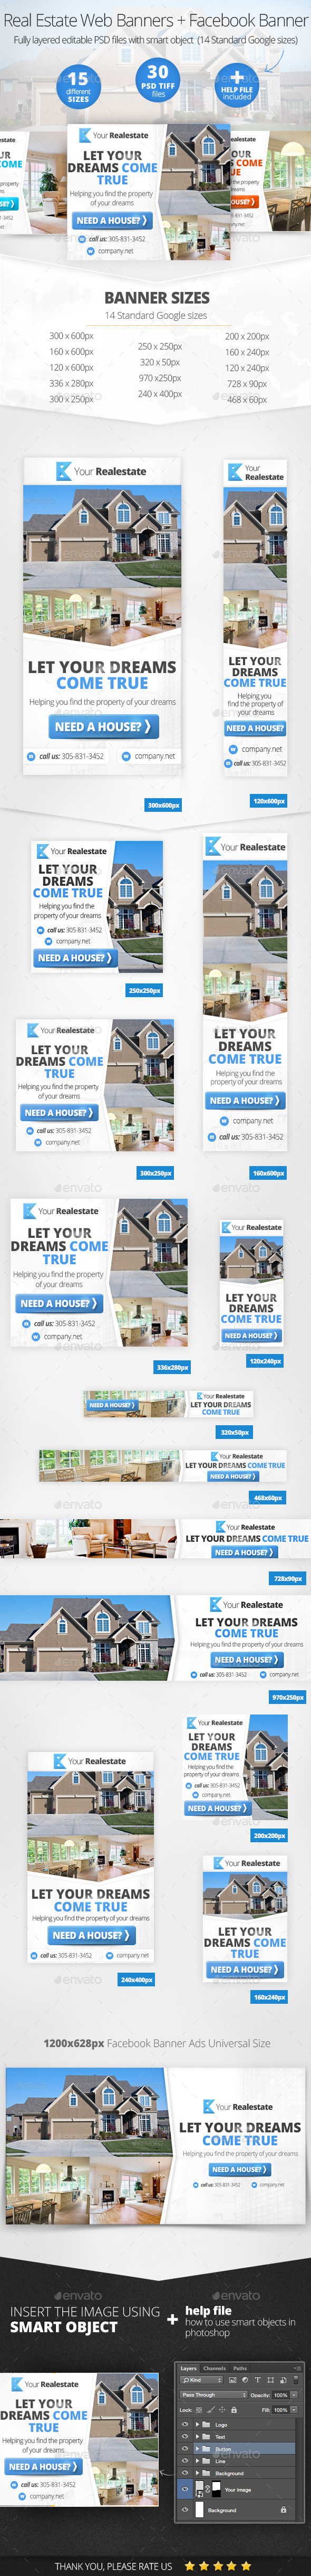 Real Estate Web & Facebook Banners - Banners & Ads Web Elements